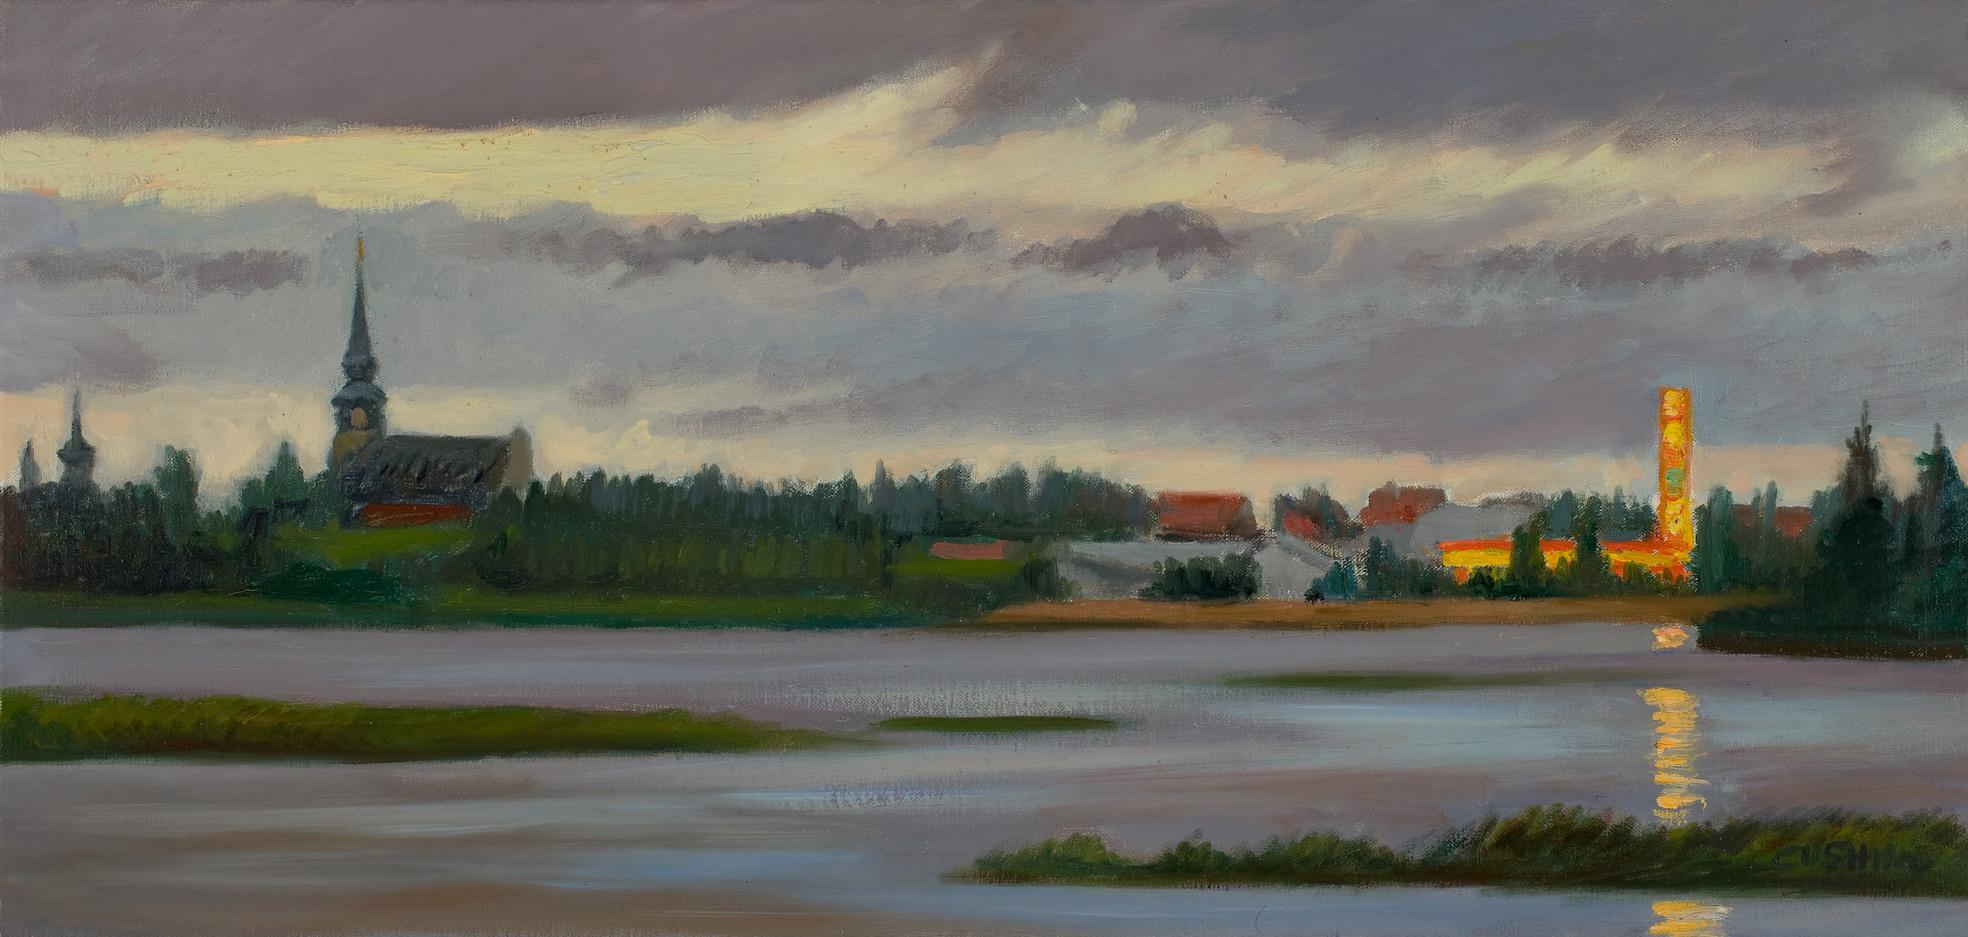 painted from life on a midsummer evening near Kemijarvi, Finland in 2008.....